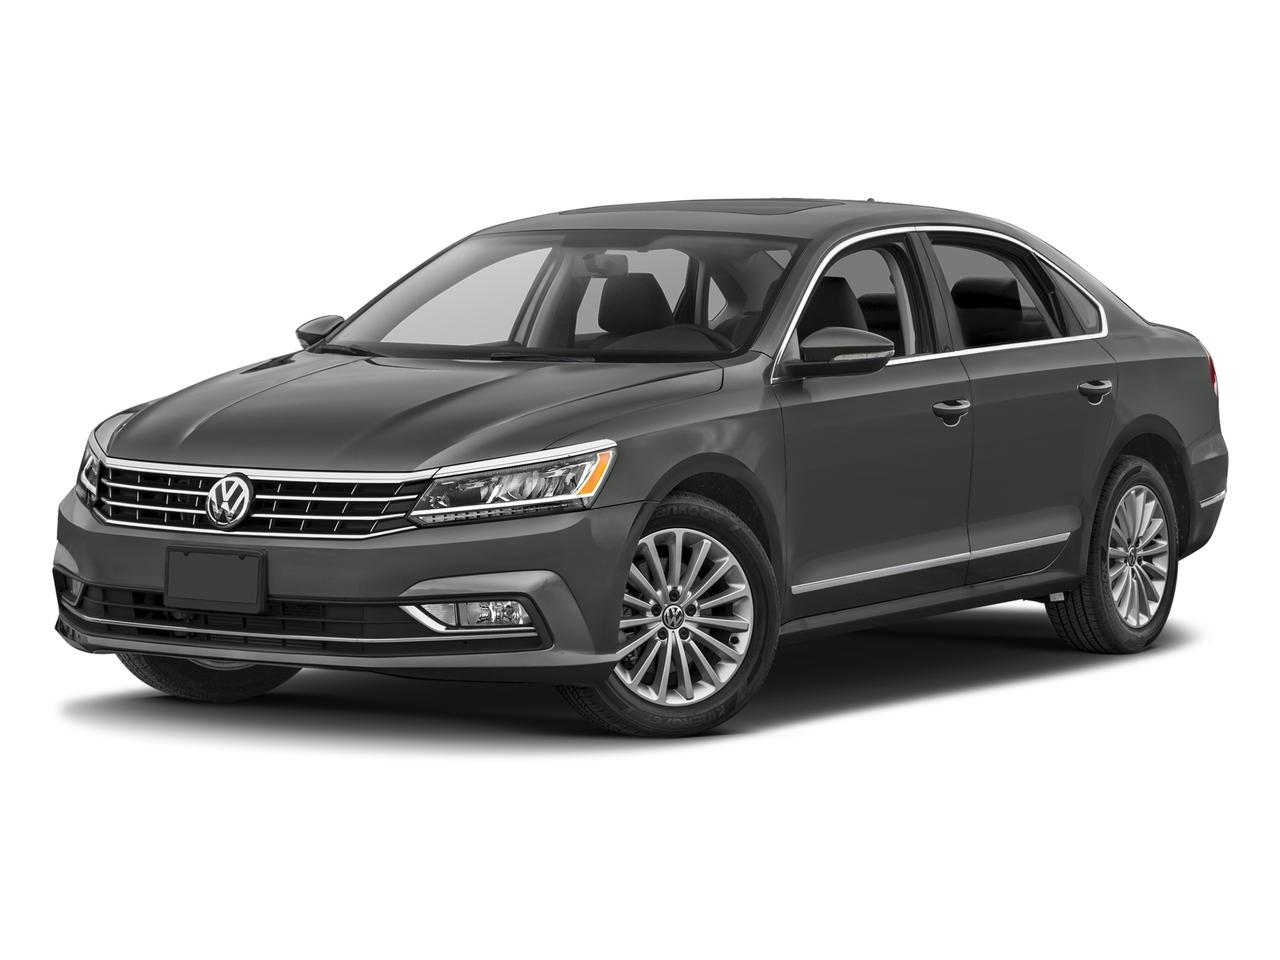 2017 Volkswagen Passat Vehicle Photo in Allentown, PA 18103